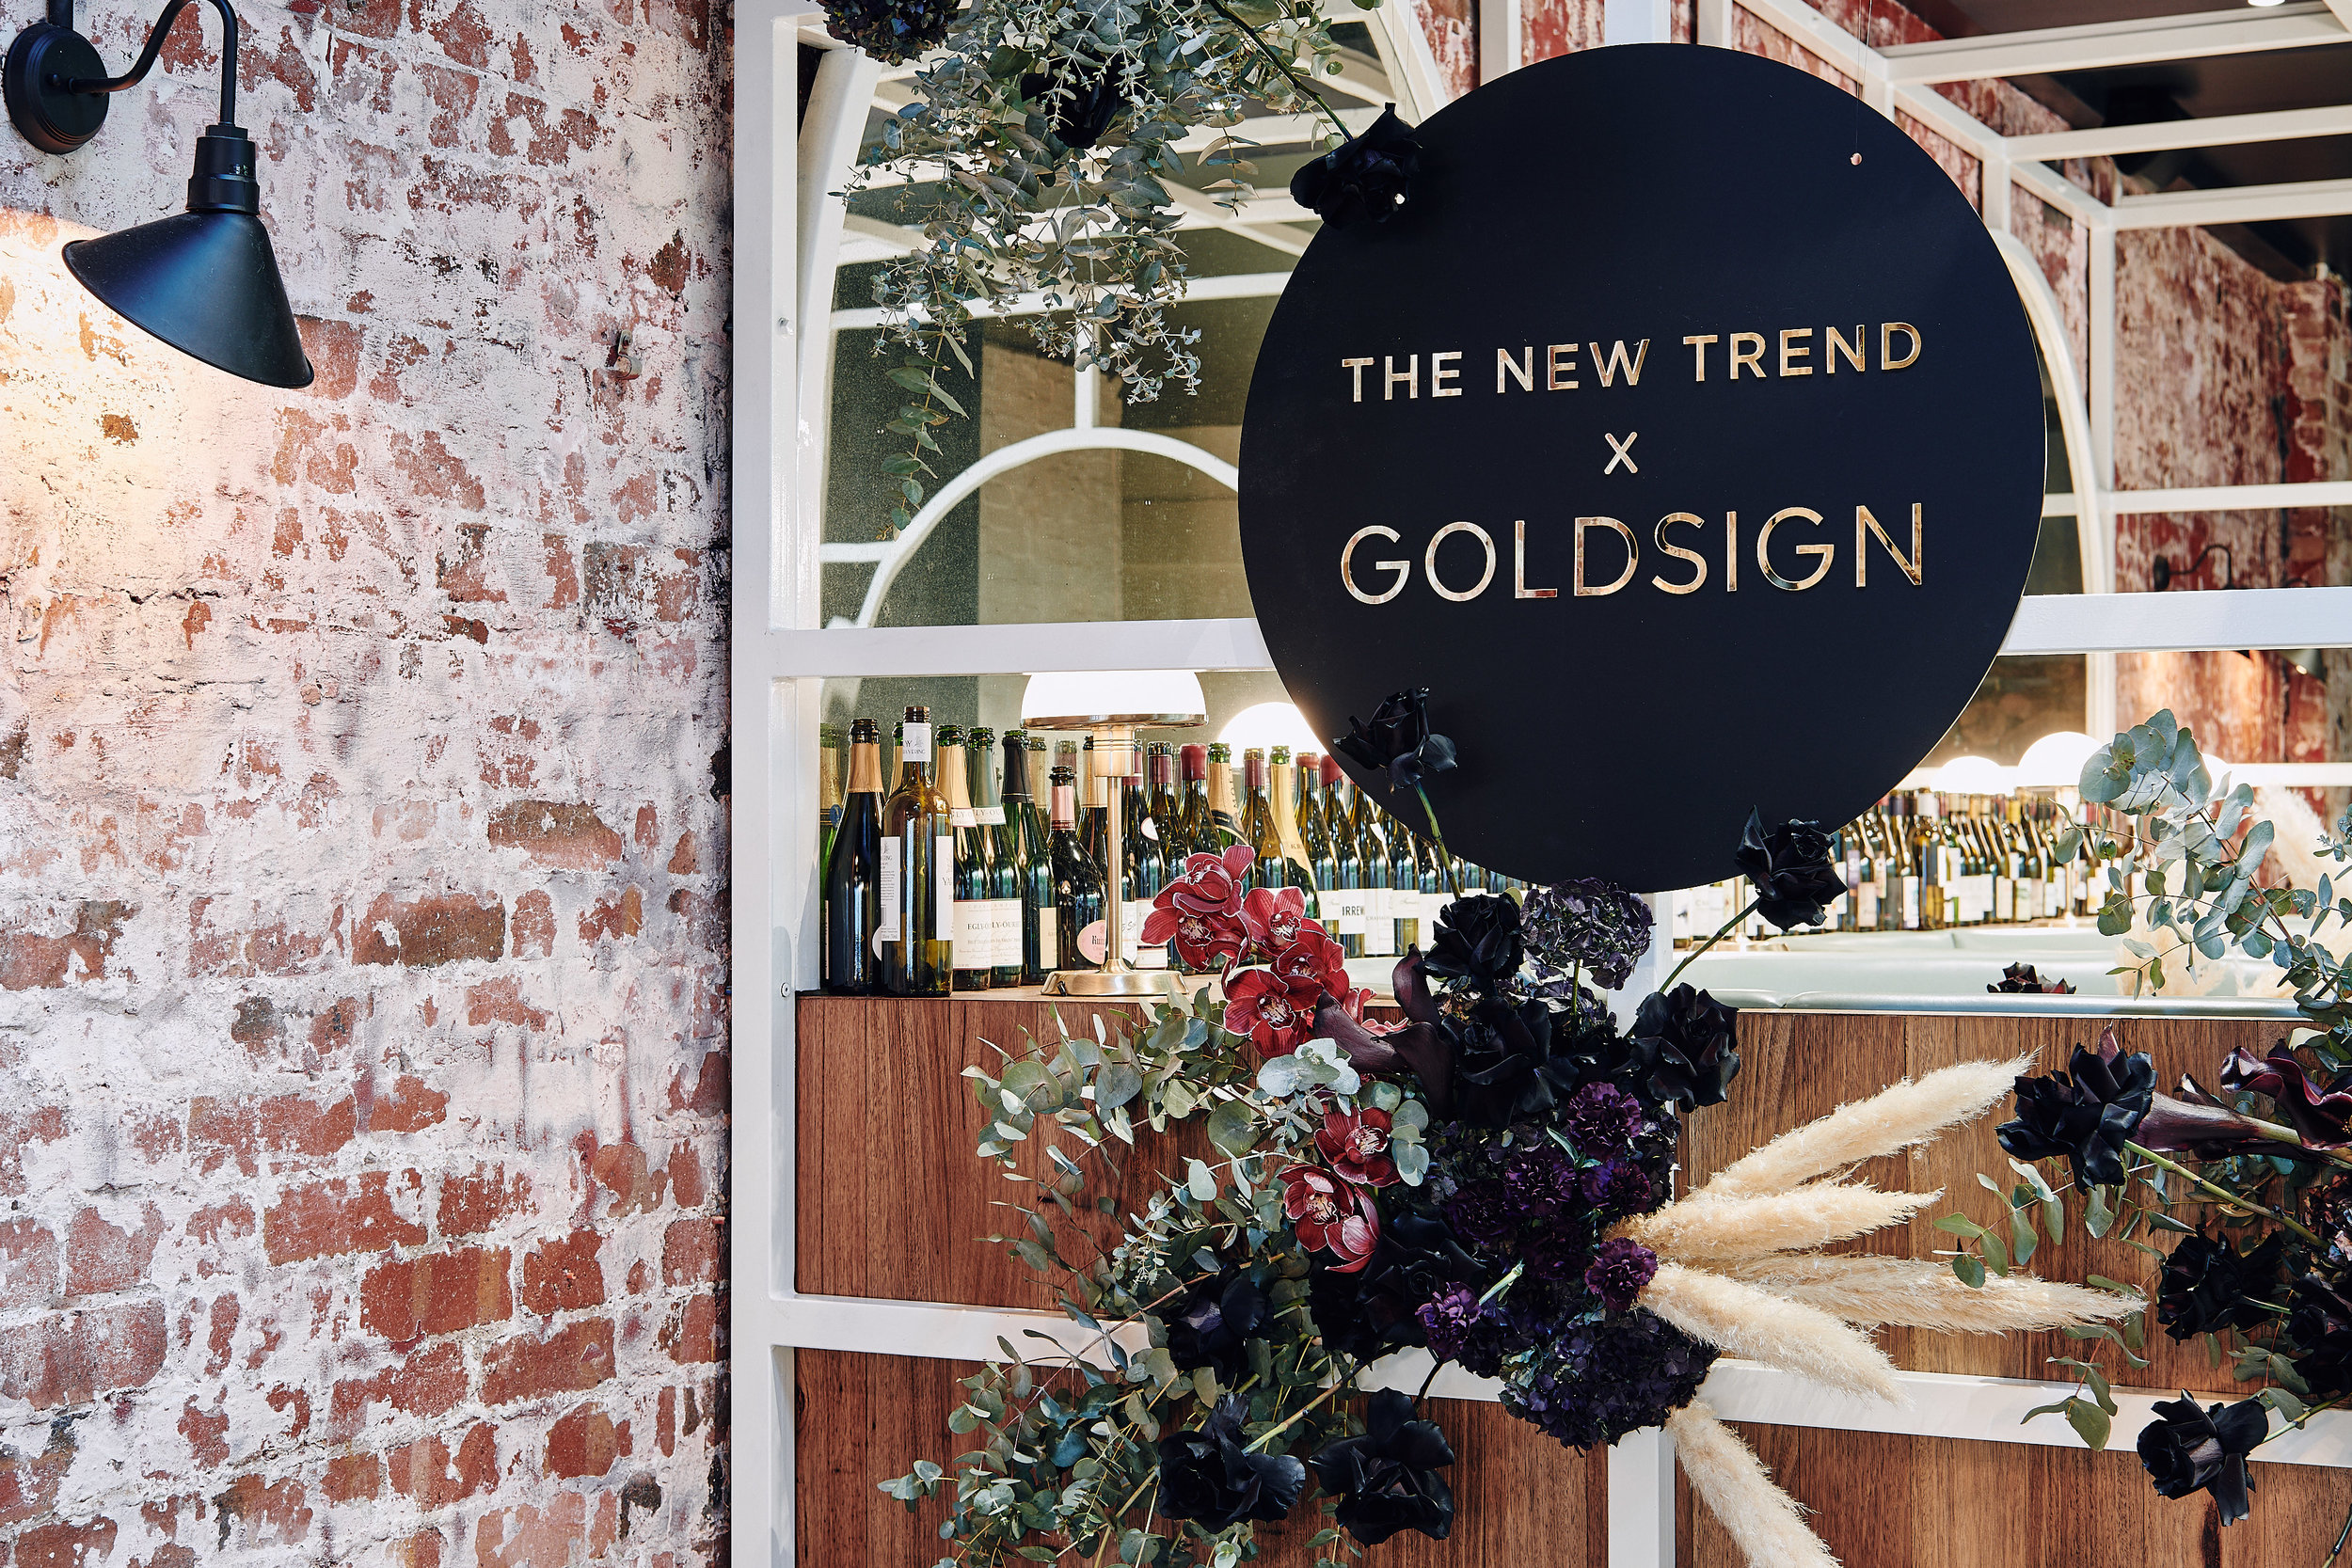 The New Trend x Goldsign at Neptune Food & Wine_by Simon Shiff_0_WEB JPEG 72DPI sRGB.jpg